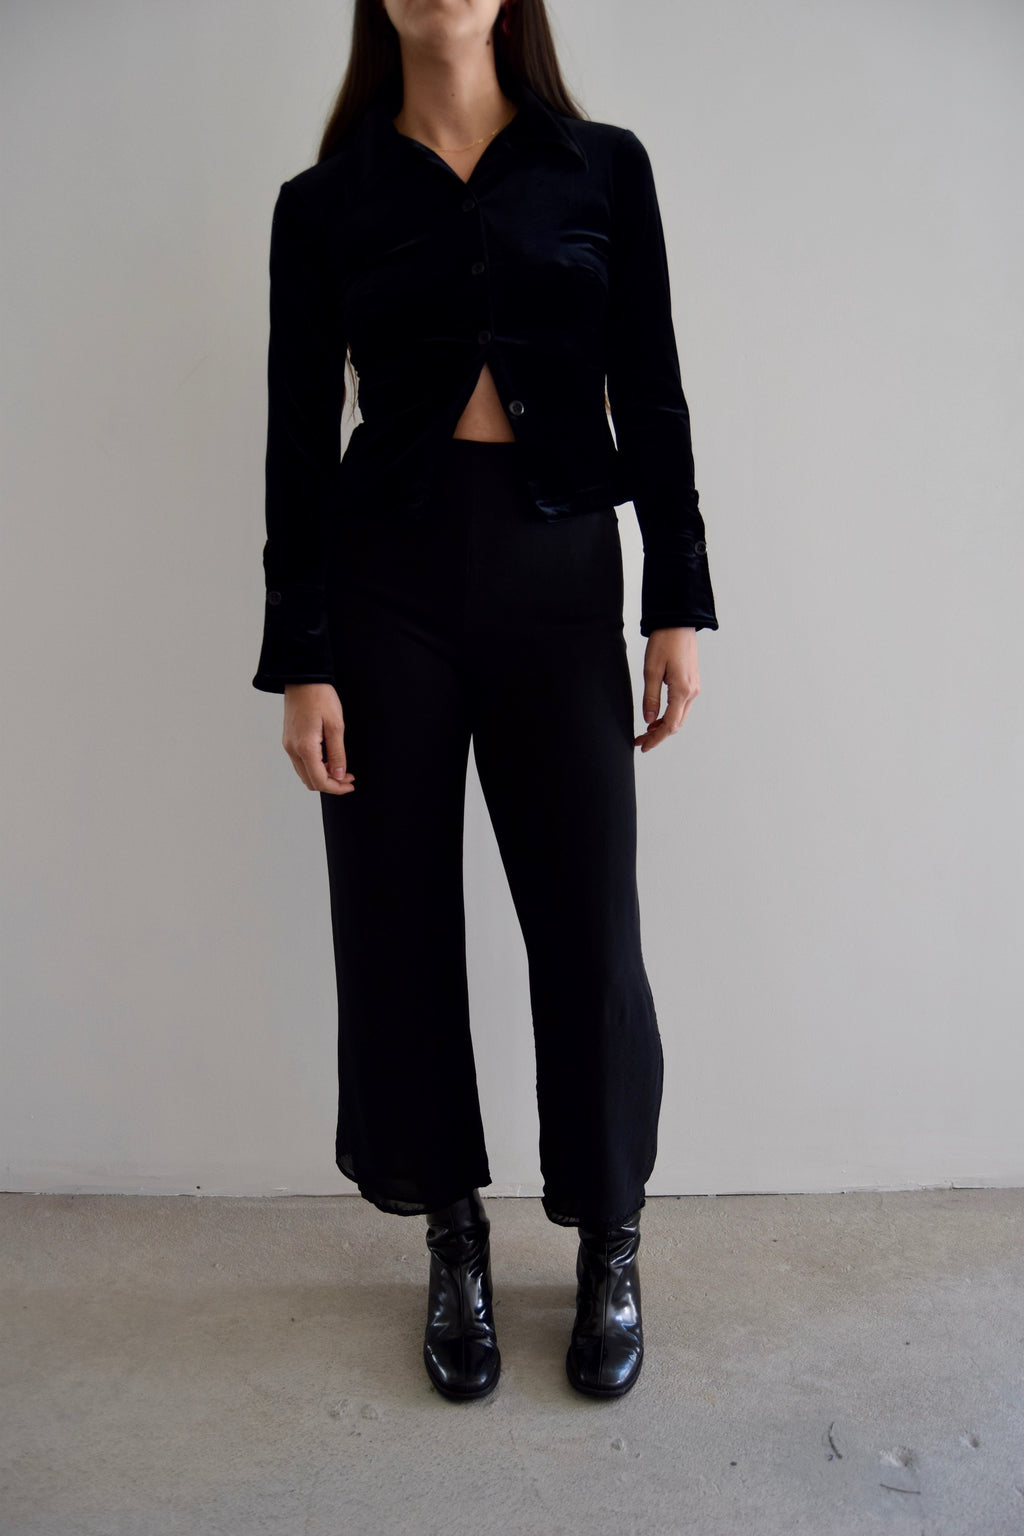 A-K-R-I-S- Black Silk Wide Leg Cropped Pants FREE SHIPPING TO THE U.S.